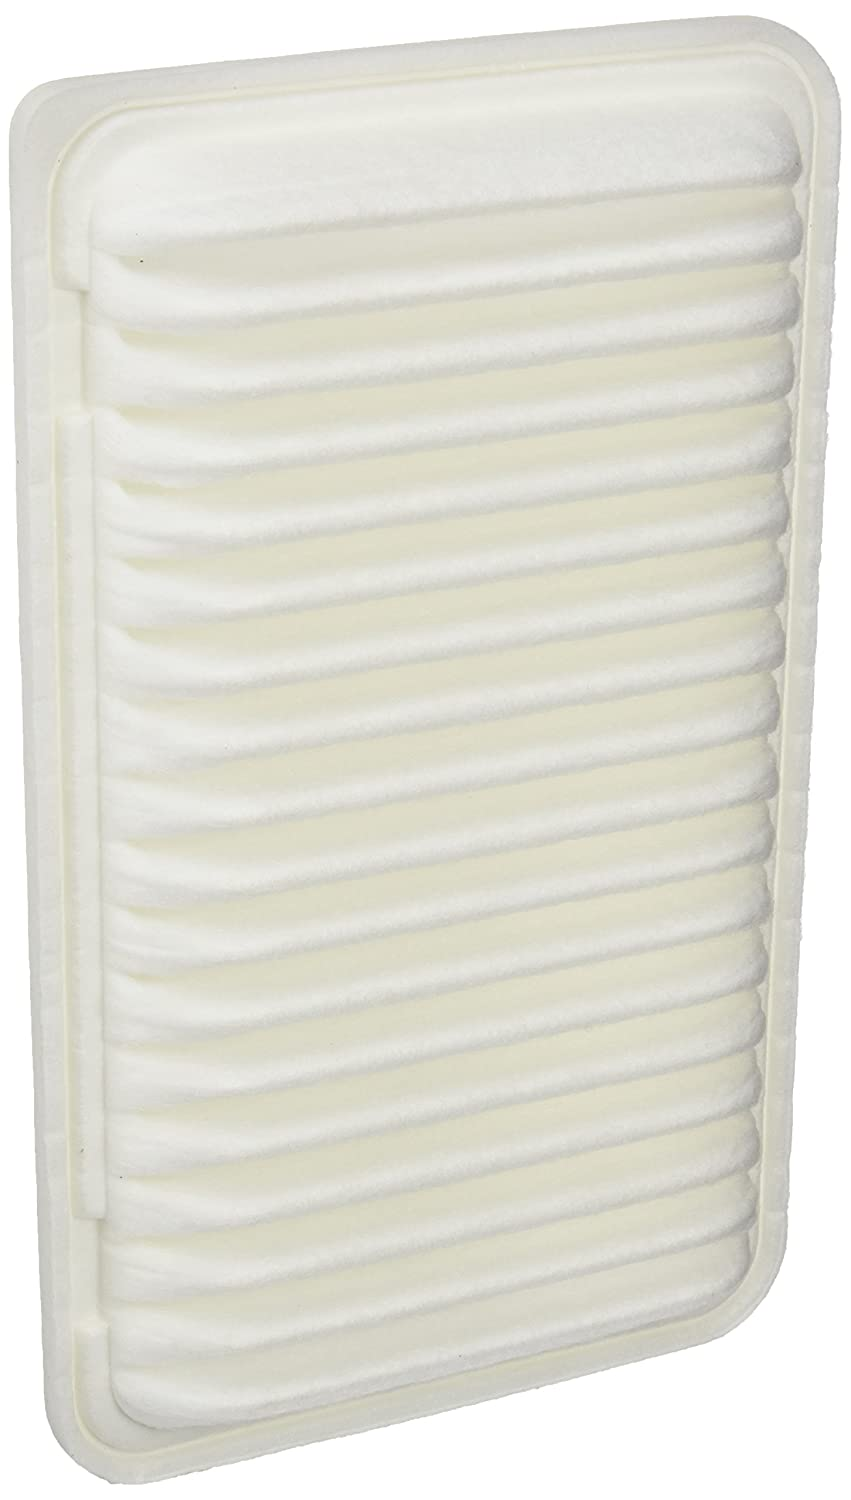 IPS PART j|ifa-3200/ Air Filter